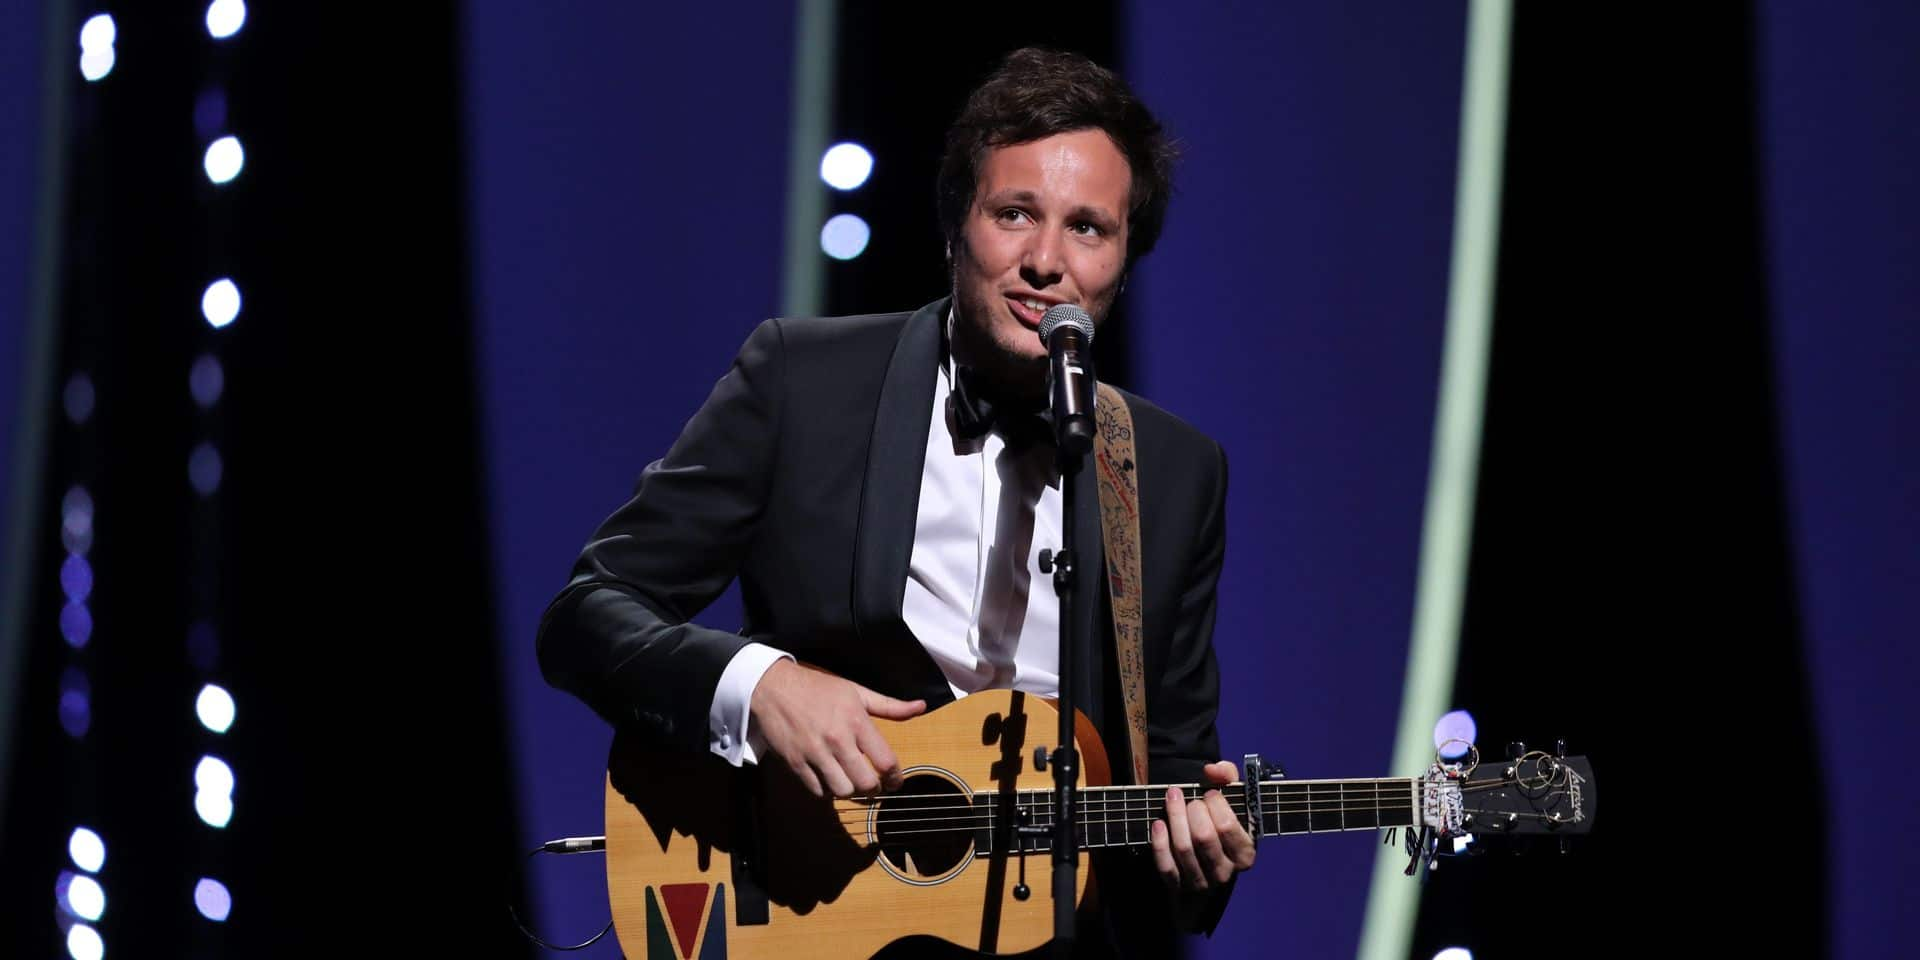 """(FILES) In this file photo taken on May 23, 2017 French singer/songwriter Vianney performs on stage during the '70th Anniversary' ceremony of the Cannes Film Festival in Cannes, southern France. - """"Les Enfoires"""" will perform five concerts at the Arkea Area in Bordeaux, from January 24 to January 28, 2019, to celebrate the 30 years of the musical show, with a new song written by Vianney. (Photo by Valery HACHE / AFP)"""